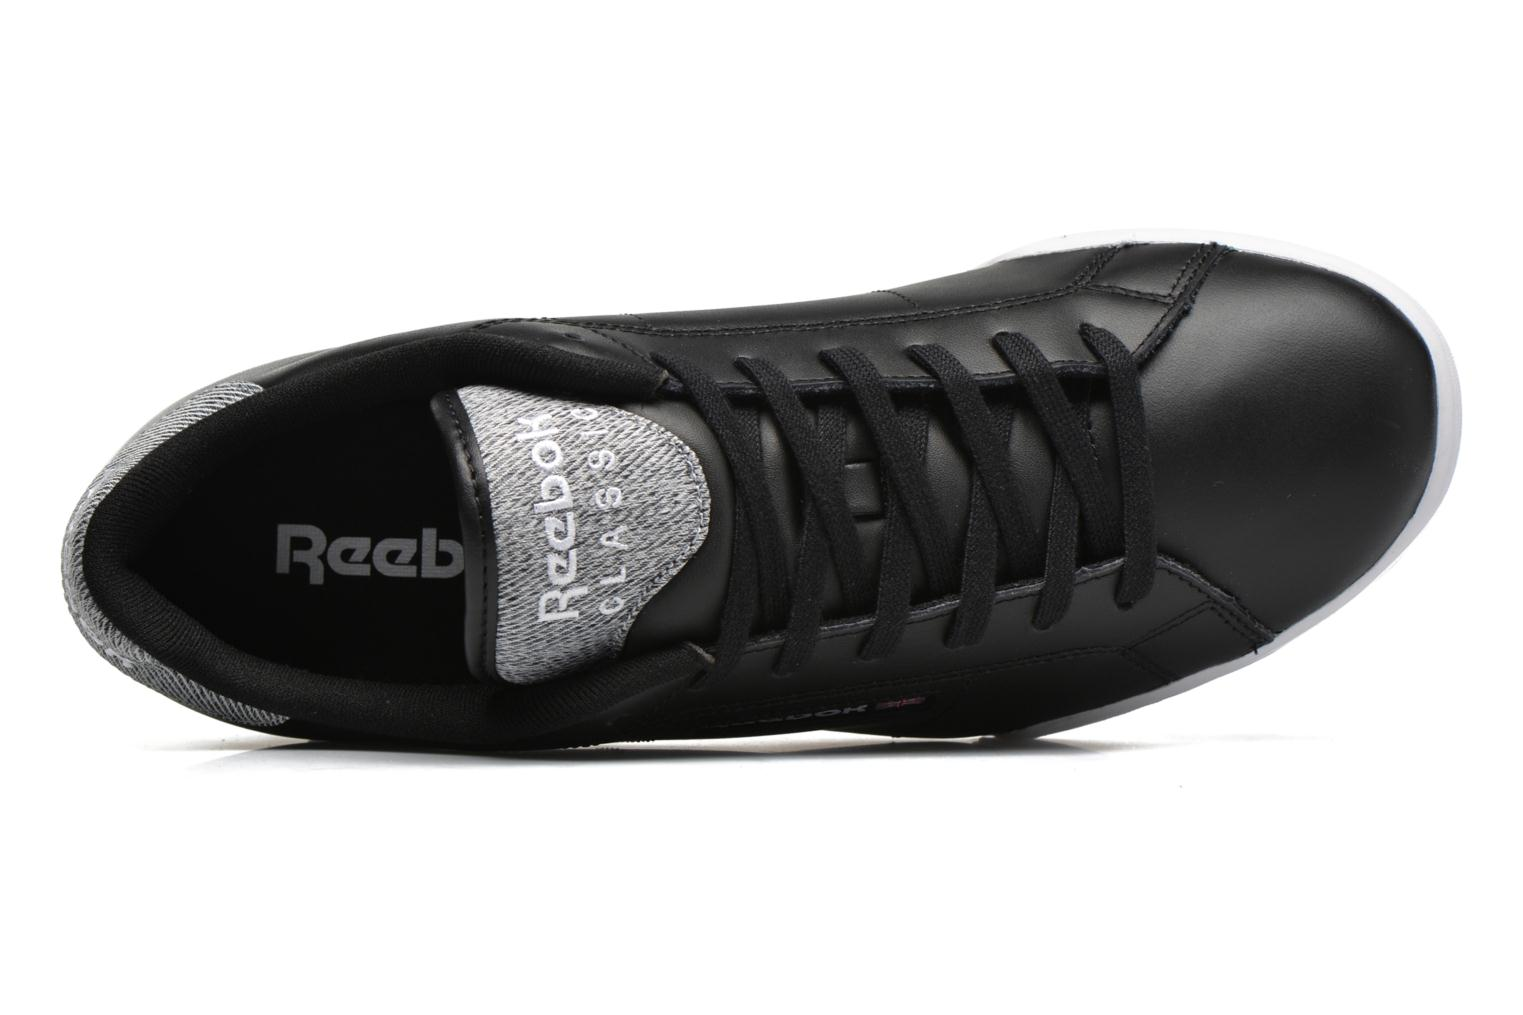 Npc Rad Pop Black/white